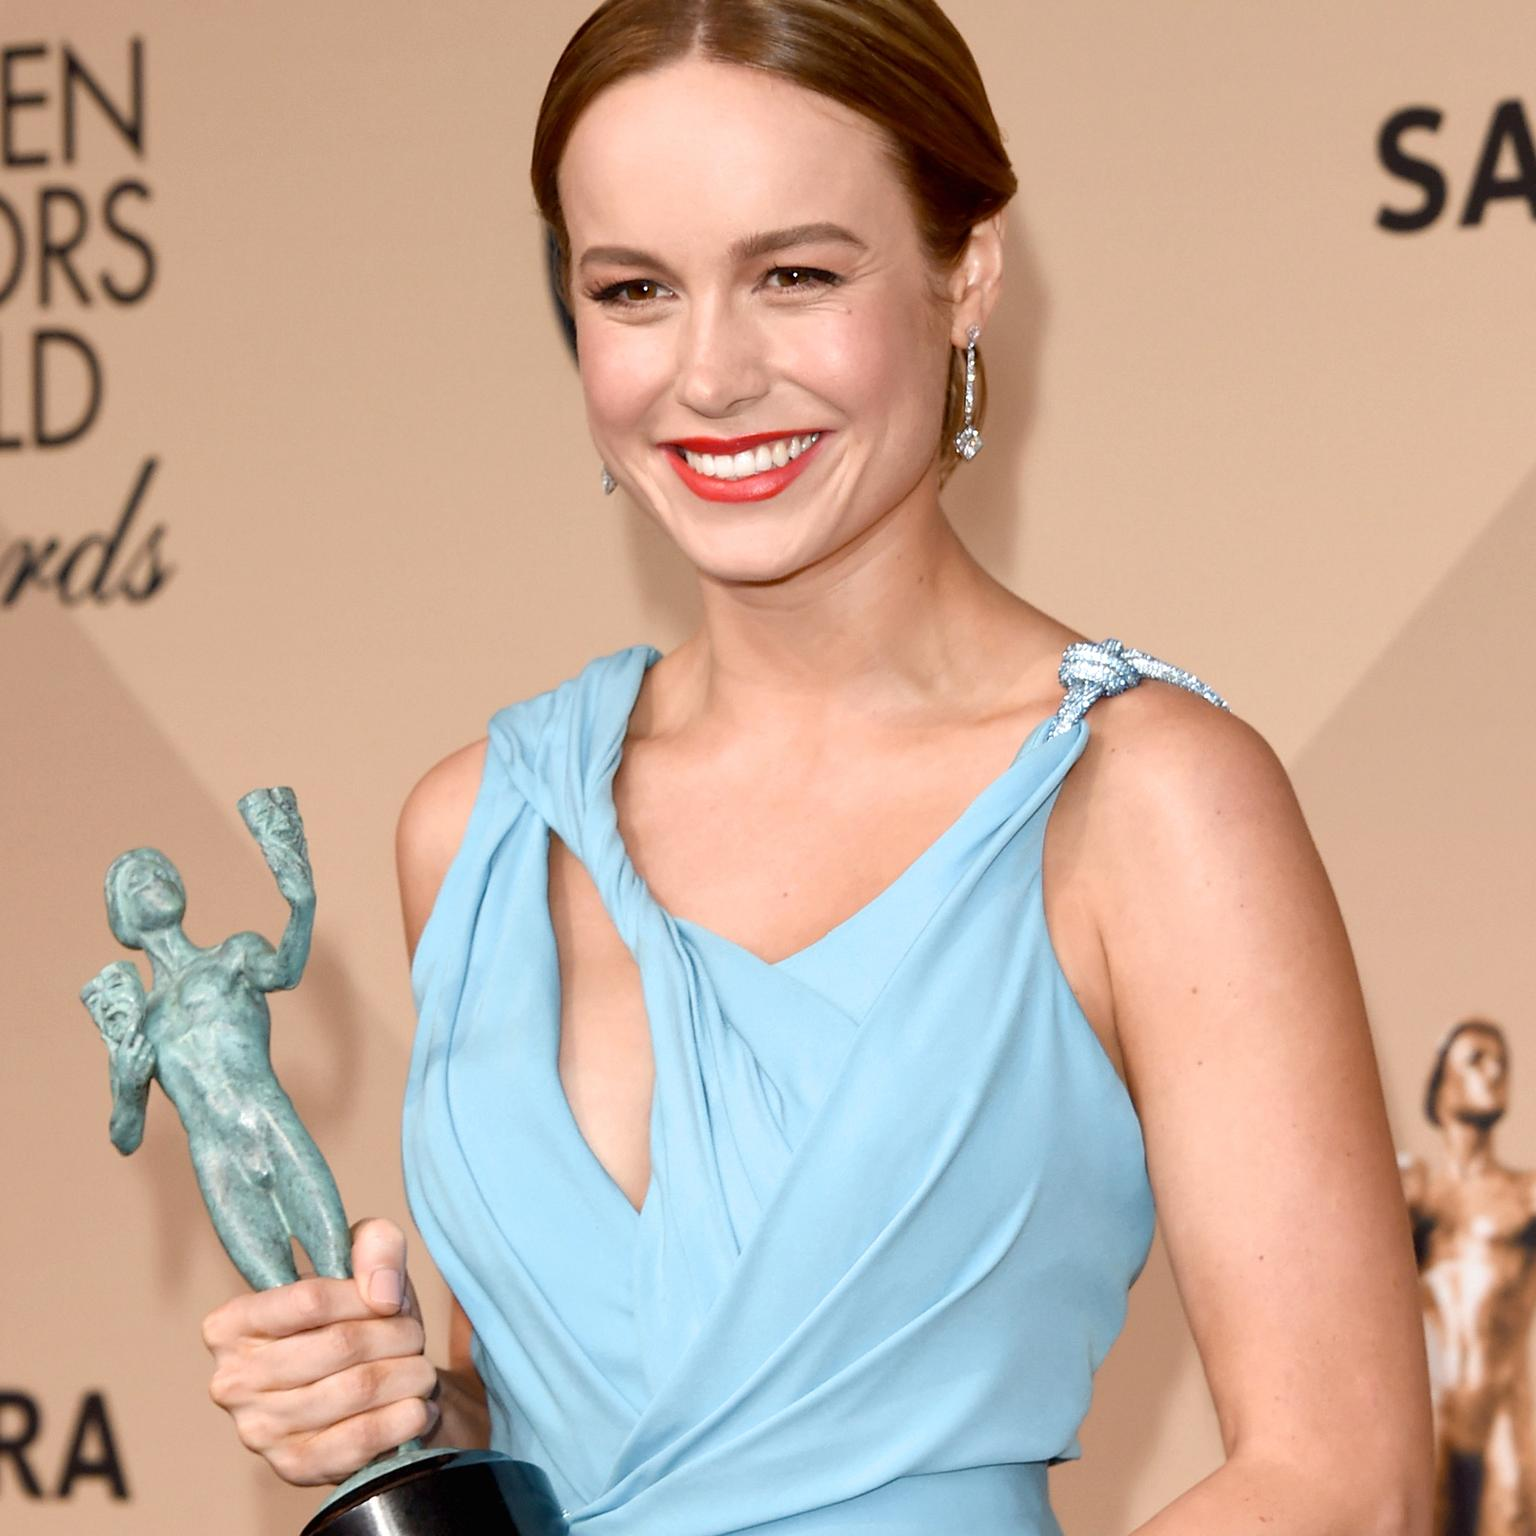 Brie Larson wearing Tiffany red carpet jewelry